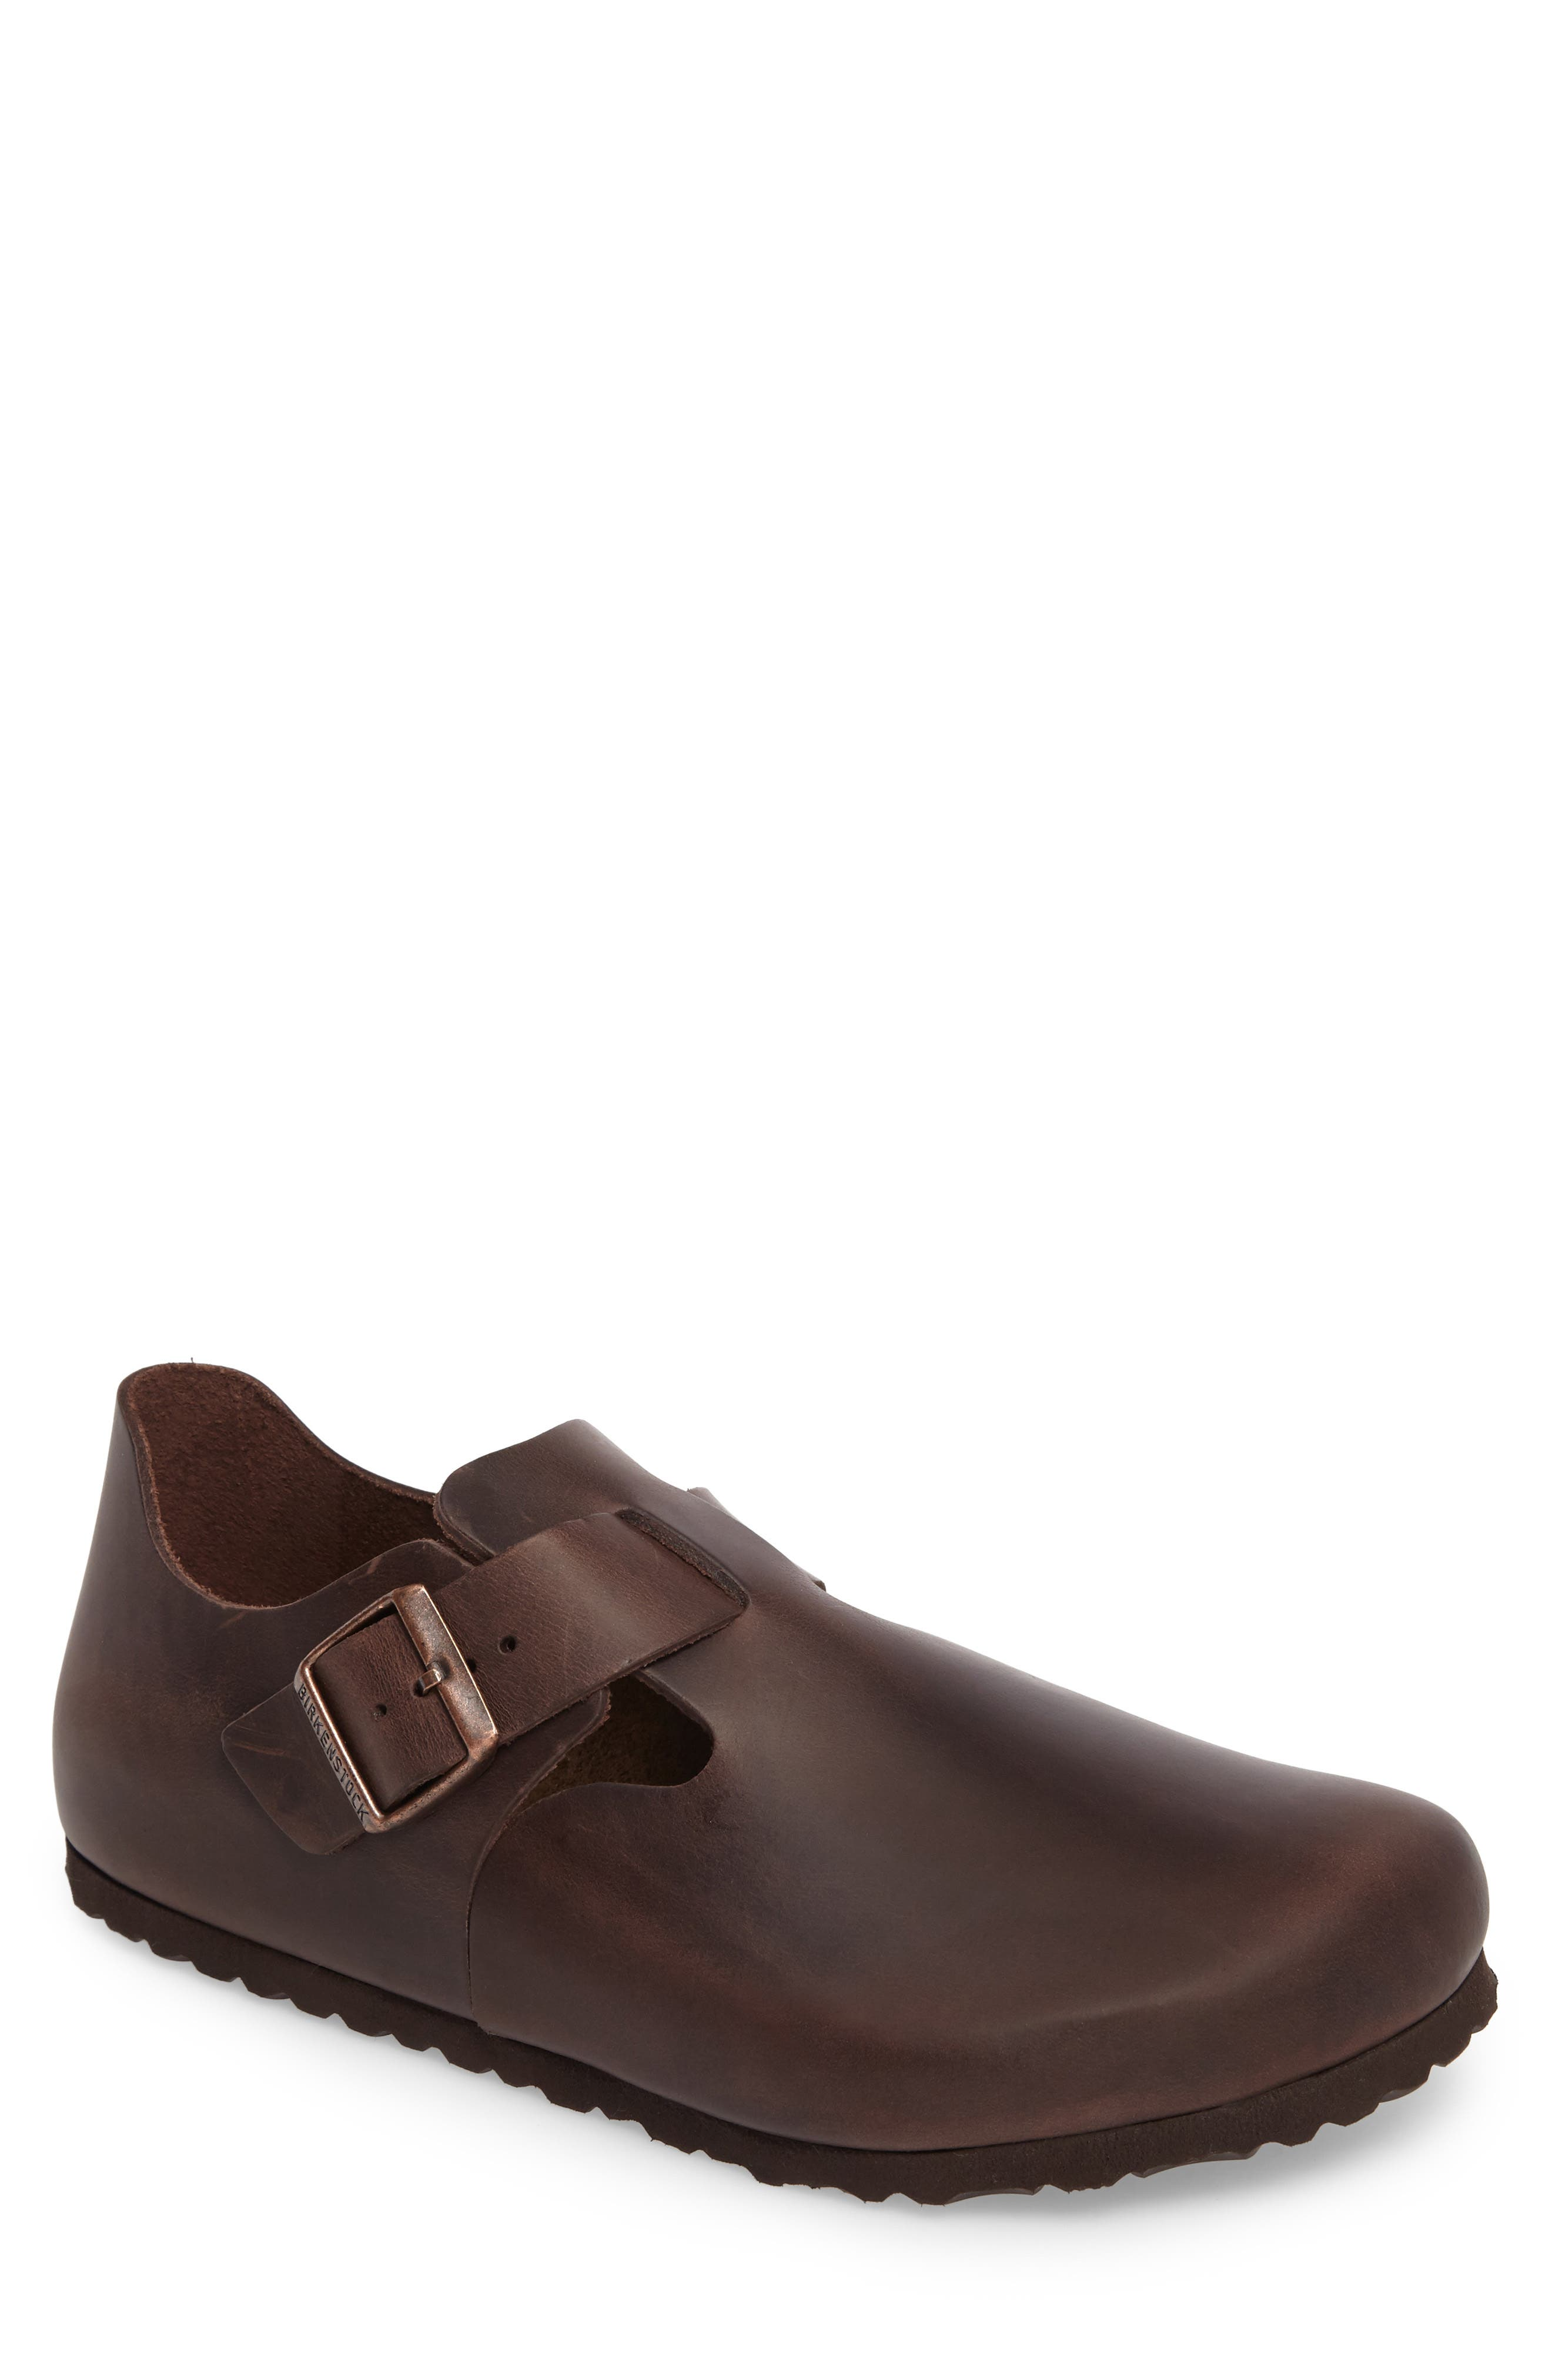 Birkenstock London Habana Slip-On (Men)